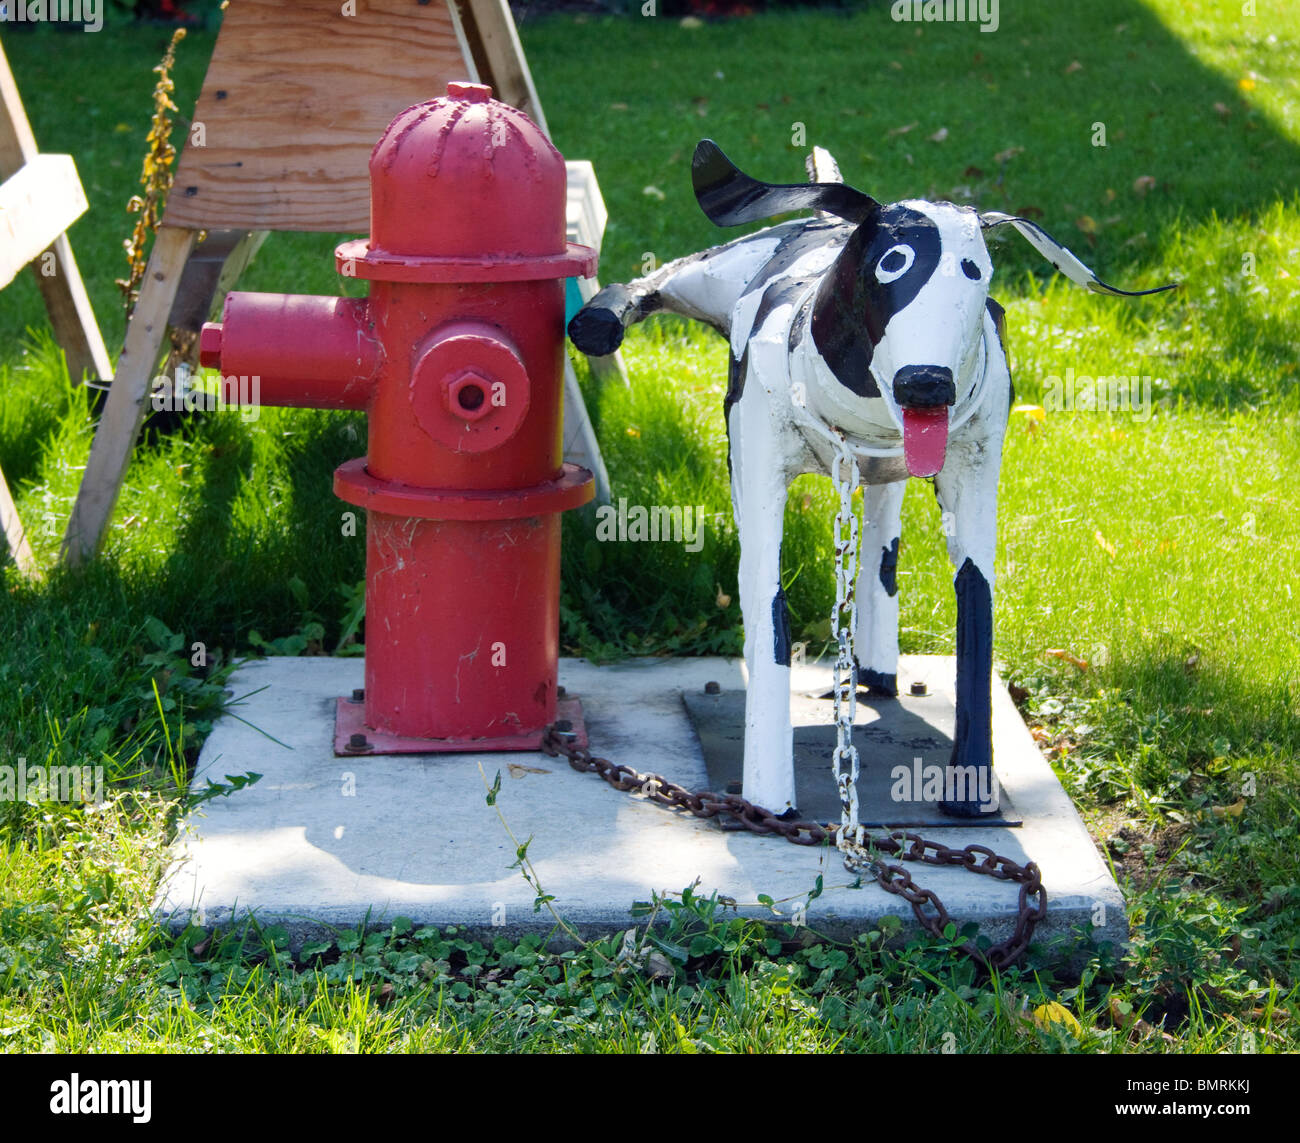 Ken Nybergs Dog Peeing On Fire Hydrant Sculpture In Vining Minnesota Stock Photo Alamy